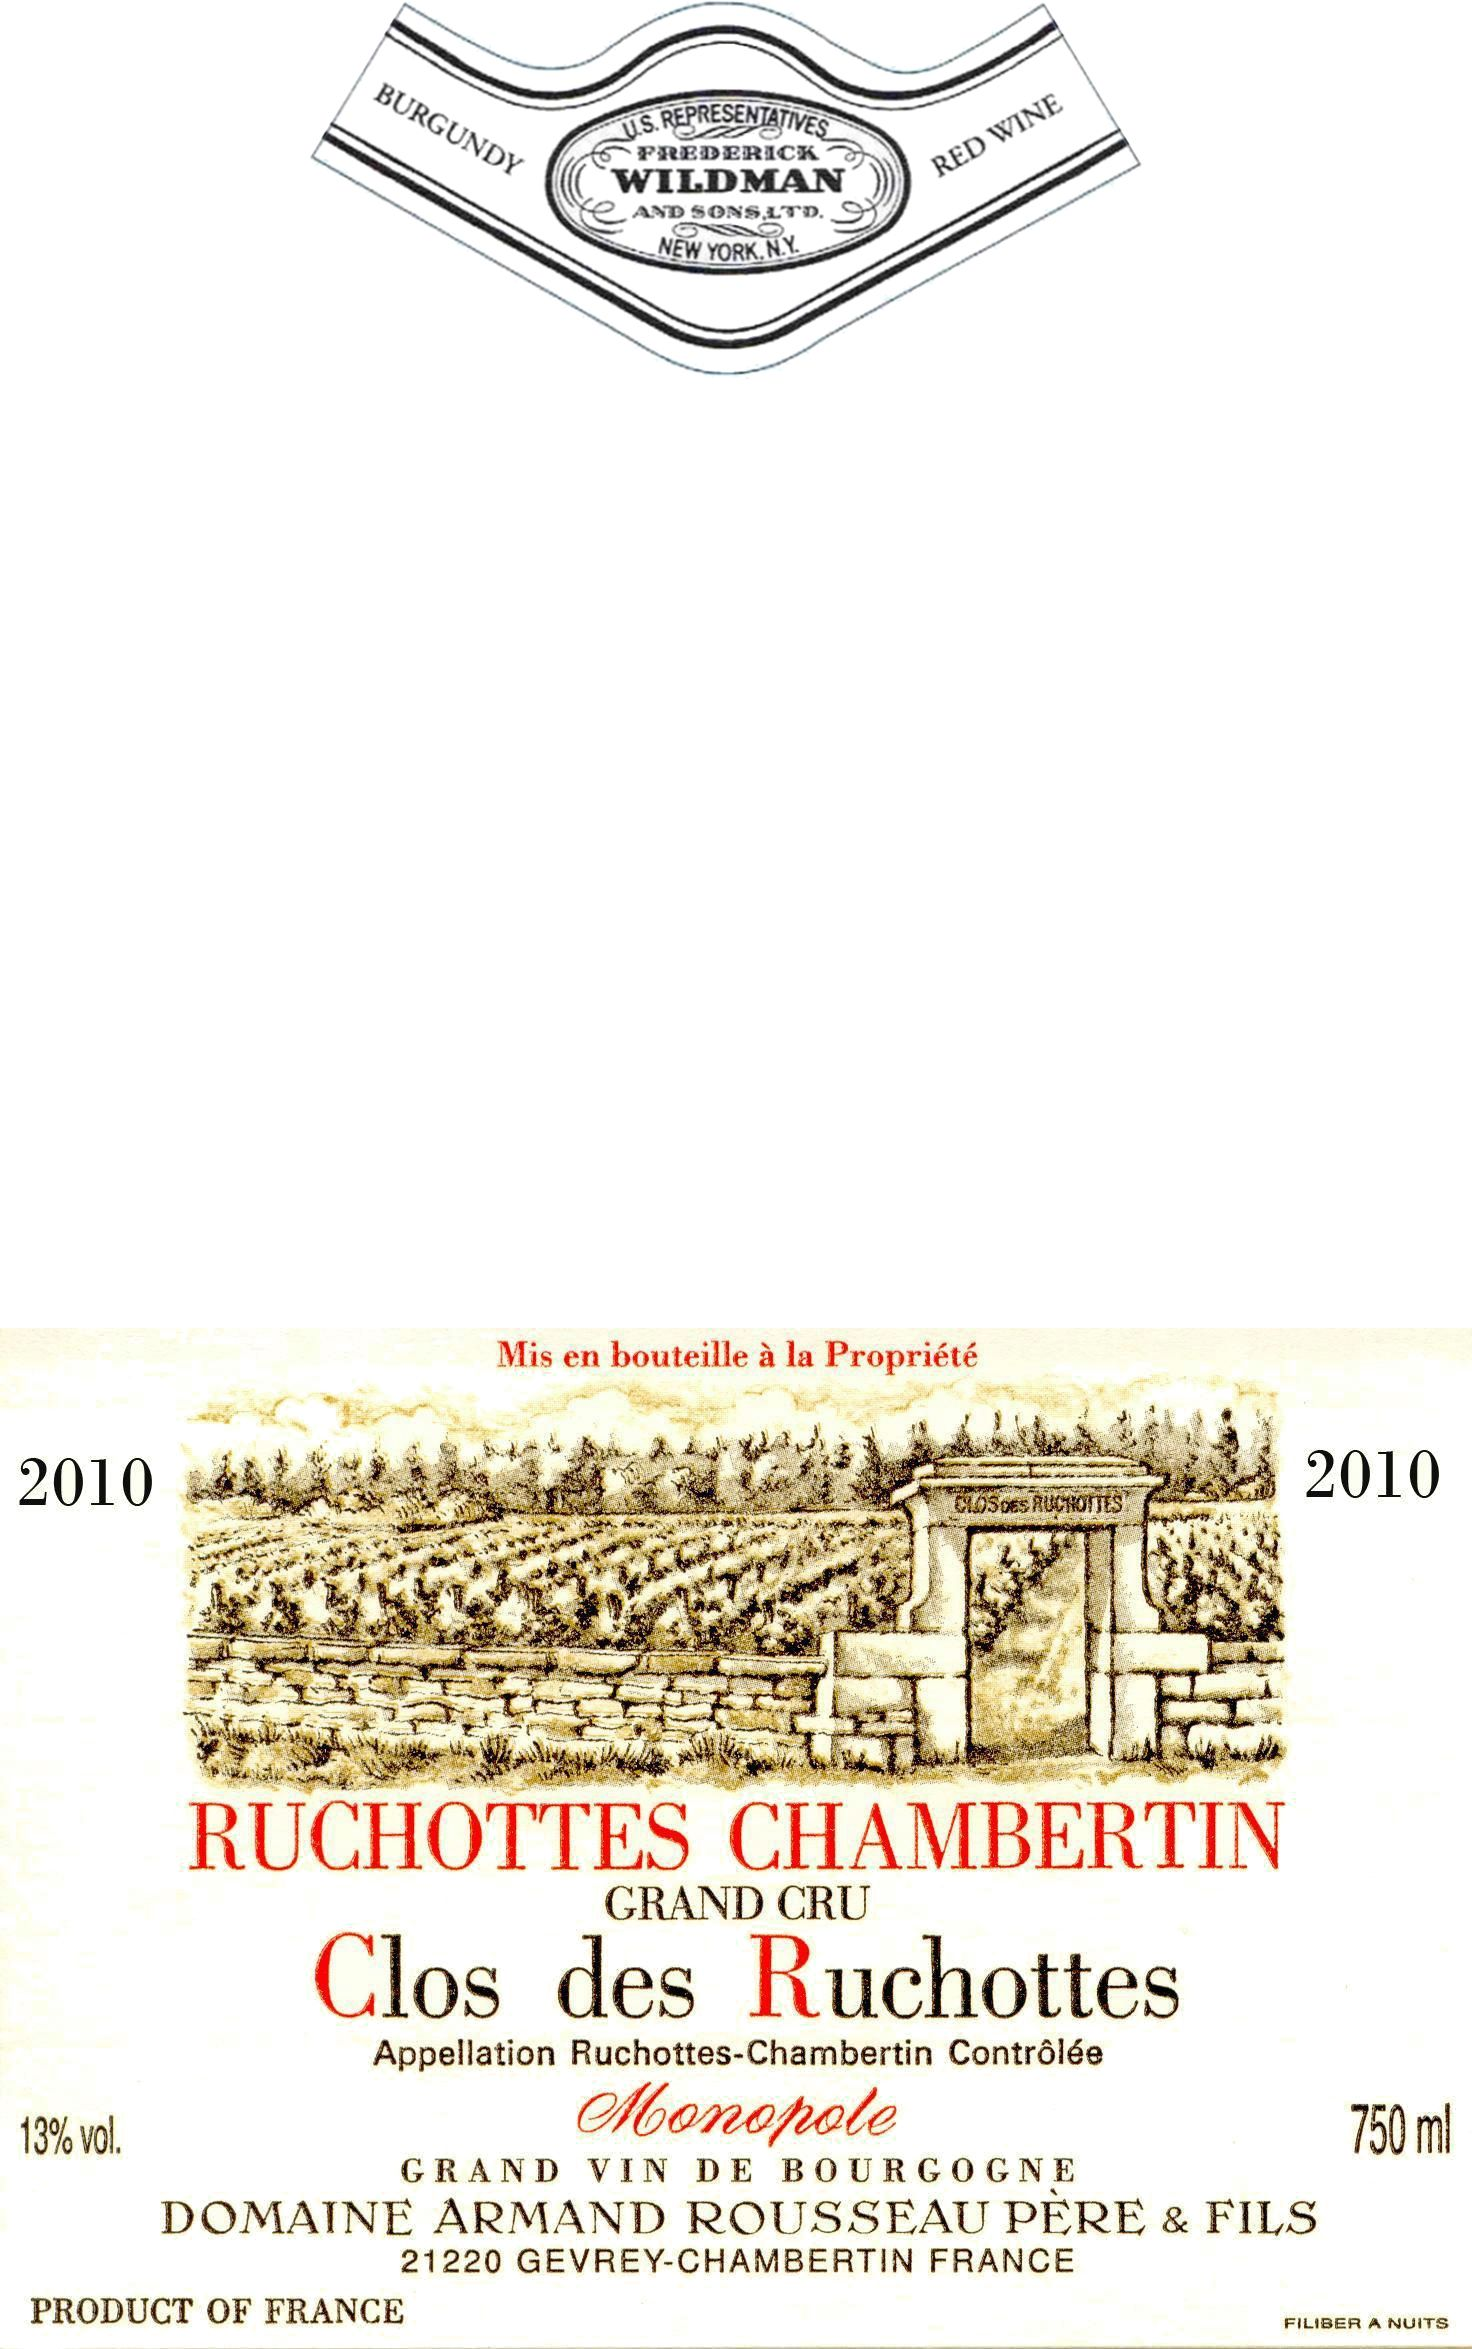 Domaine Armand Rousseau Ruchottes Chambertin Clos des Ruchottes Grand Cru 2010  Front Label